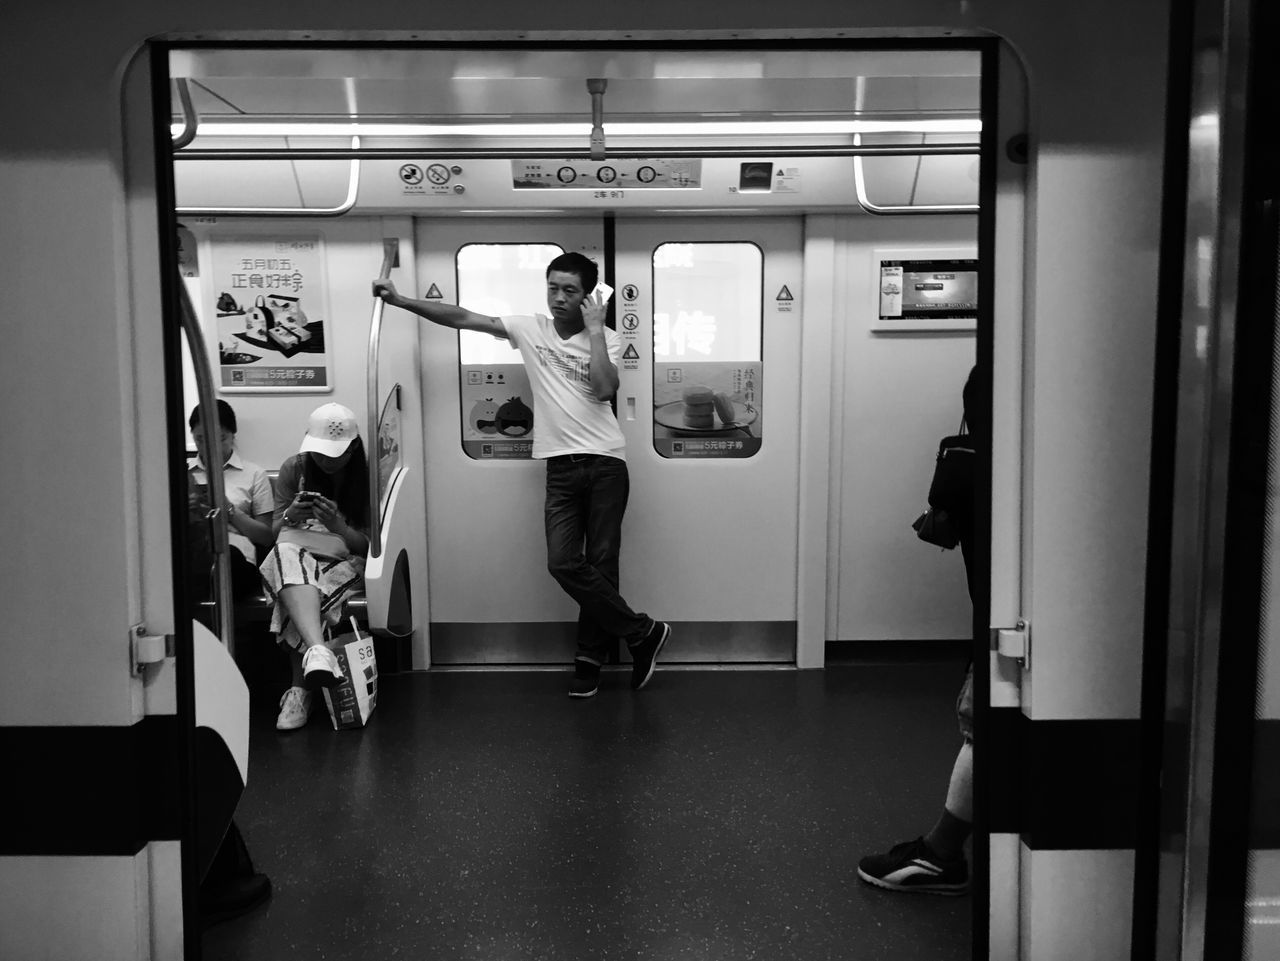 real people, full length, men, indoors, transportation, standing, train - vehicle, public transportation, one person, lifestyles, subway train, illuminated, laundromat, day, people